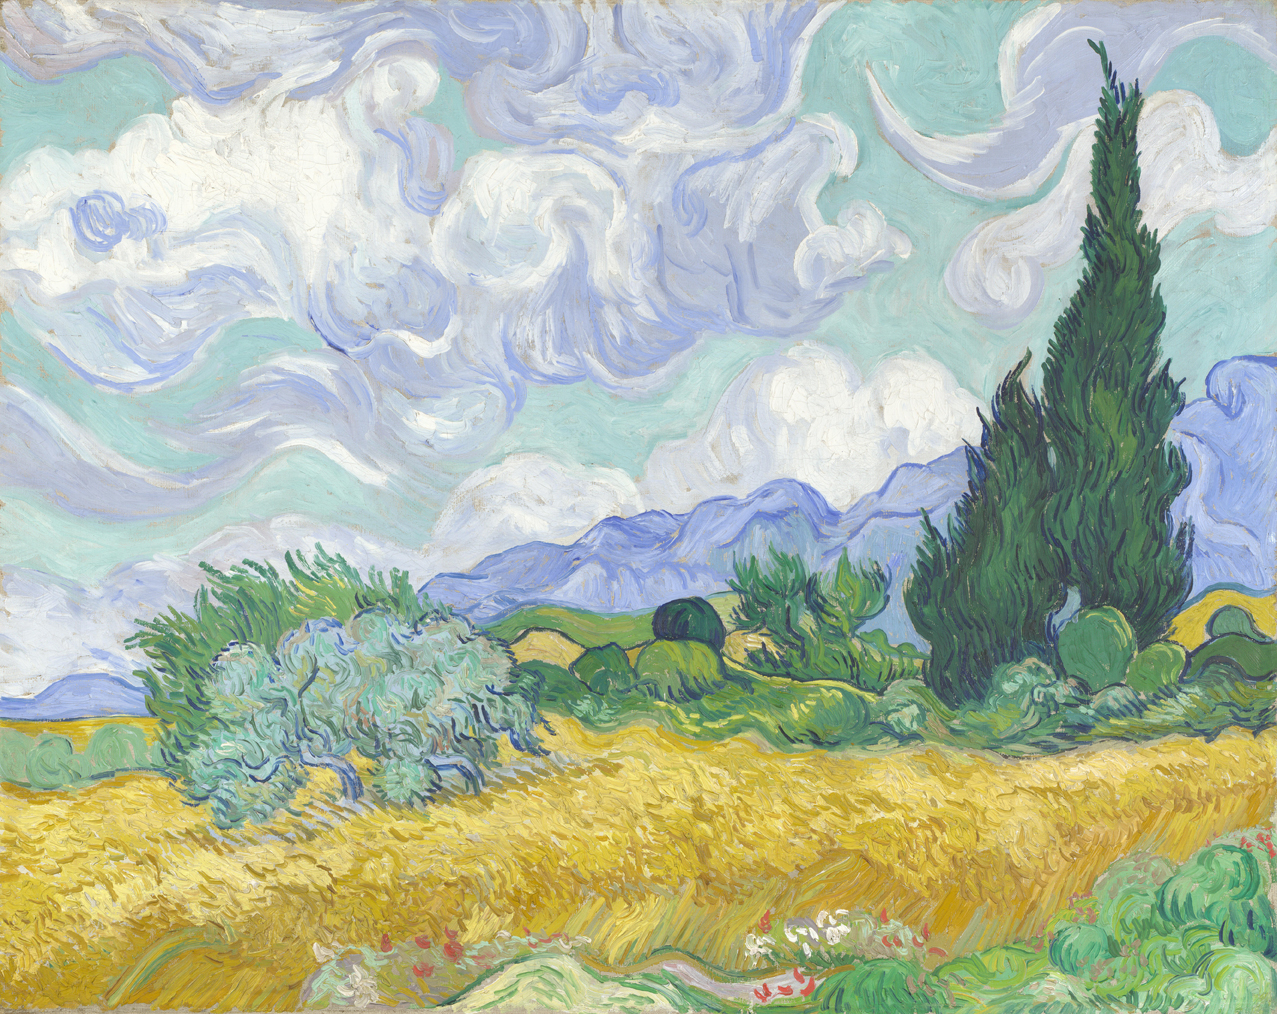 'A Wheat Field, With Cypresses' (1889) by Vincent van Gogh will be in 'Van Gogh and Nature,' at the Clark Art Institute in June. Credit: National Gallery, London 2014